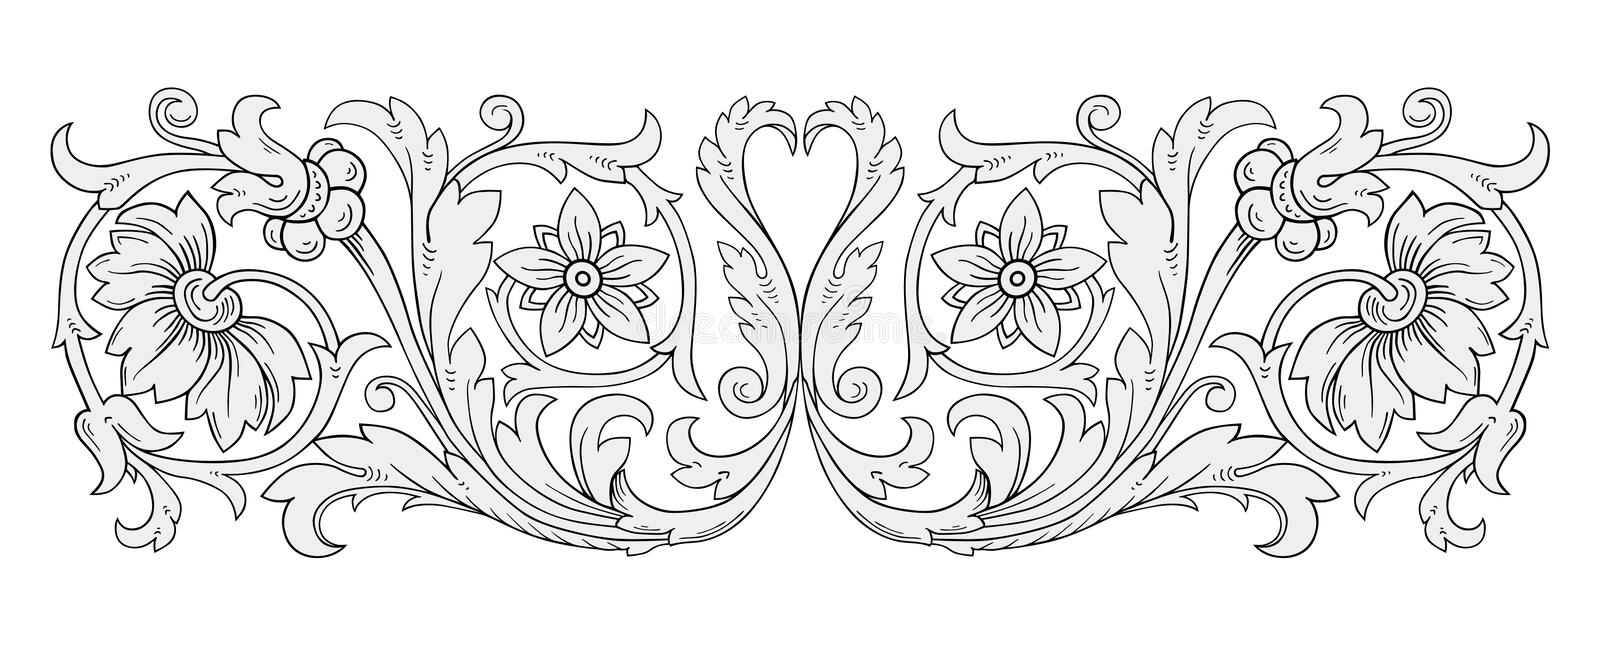 Bloemen ornamentvector stock illustratie